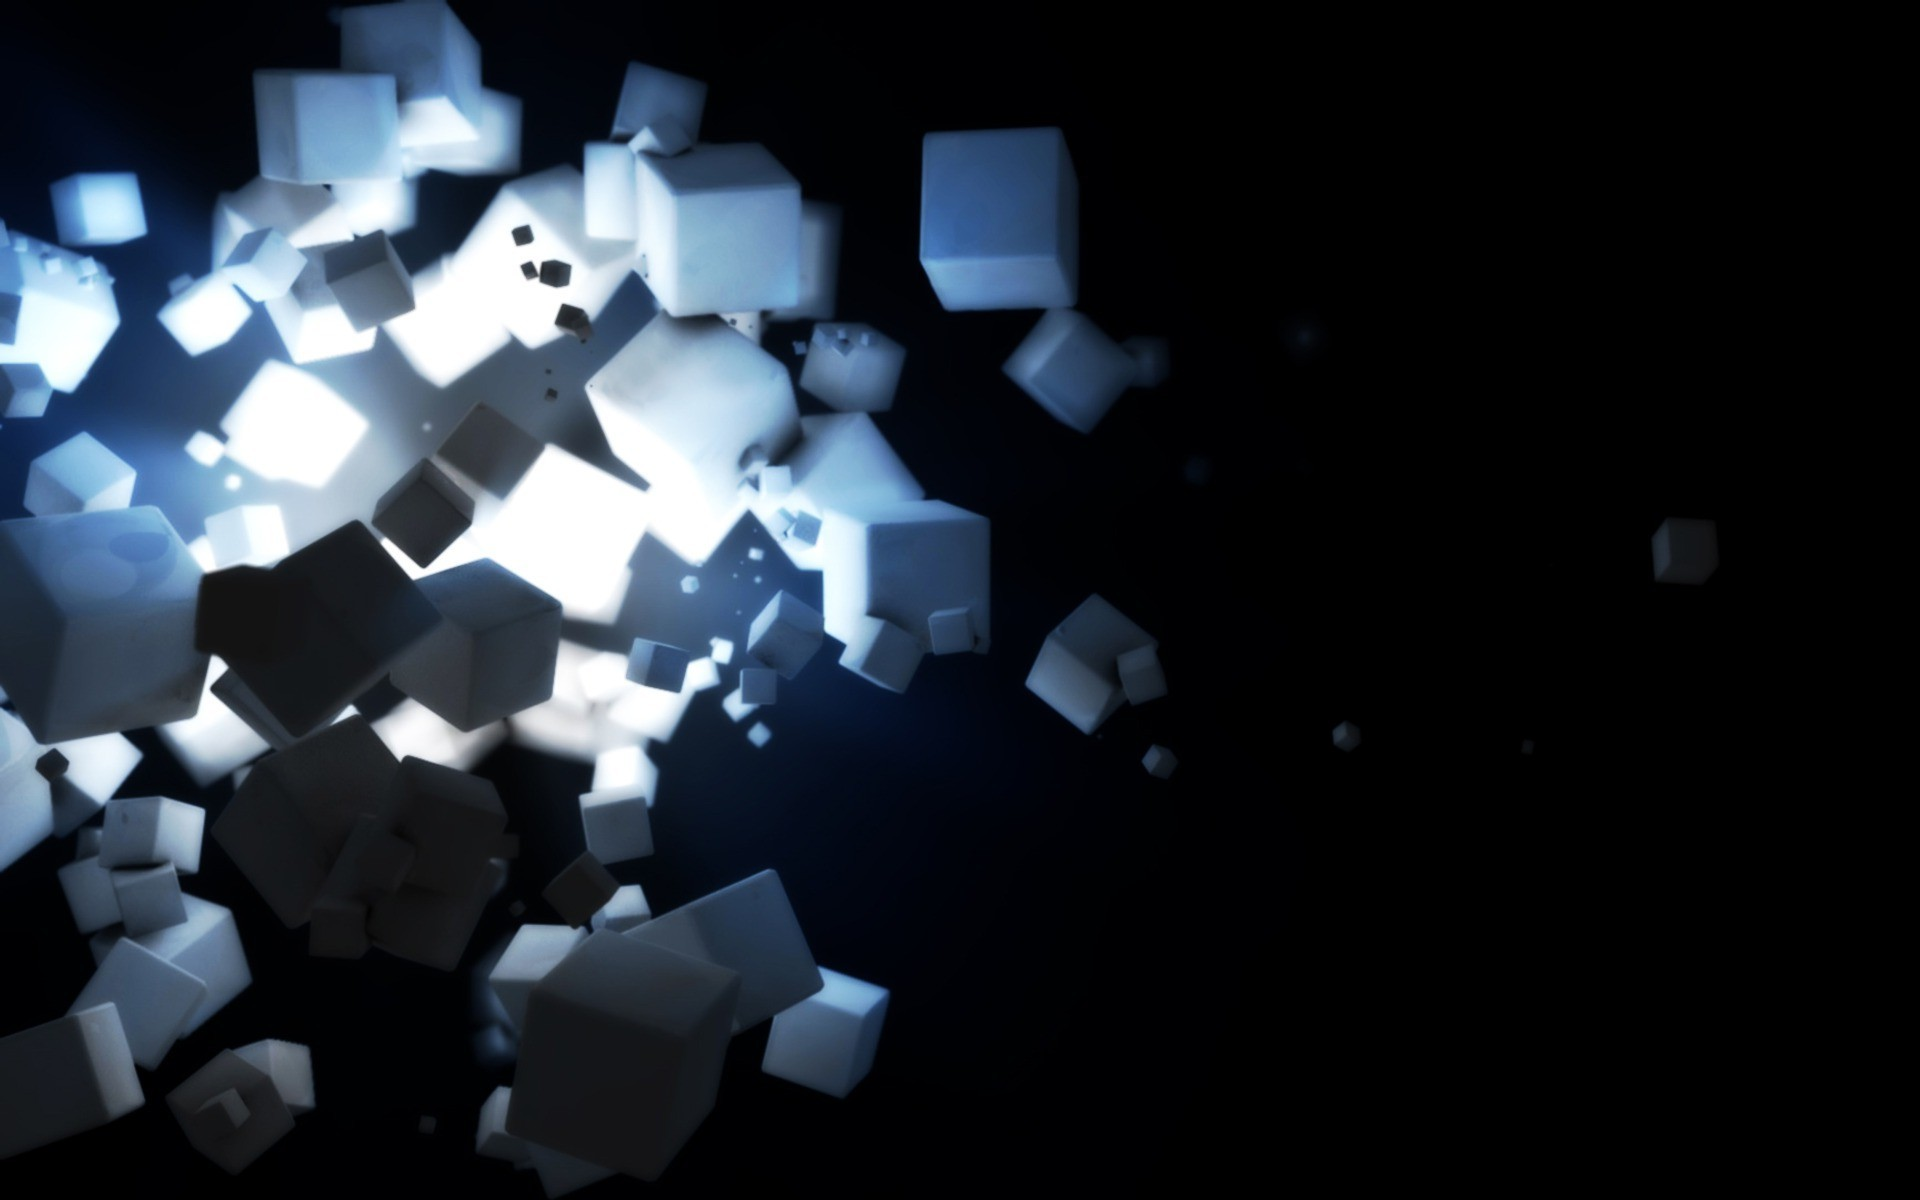 Floating white cubes